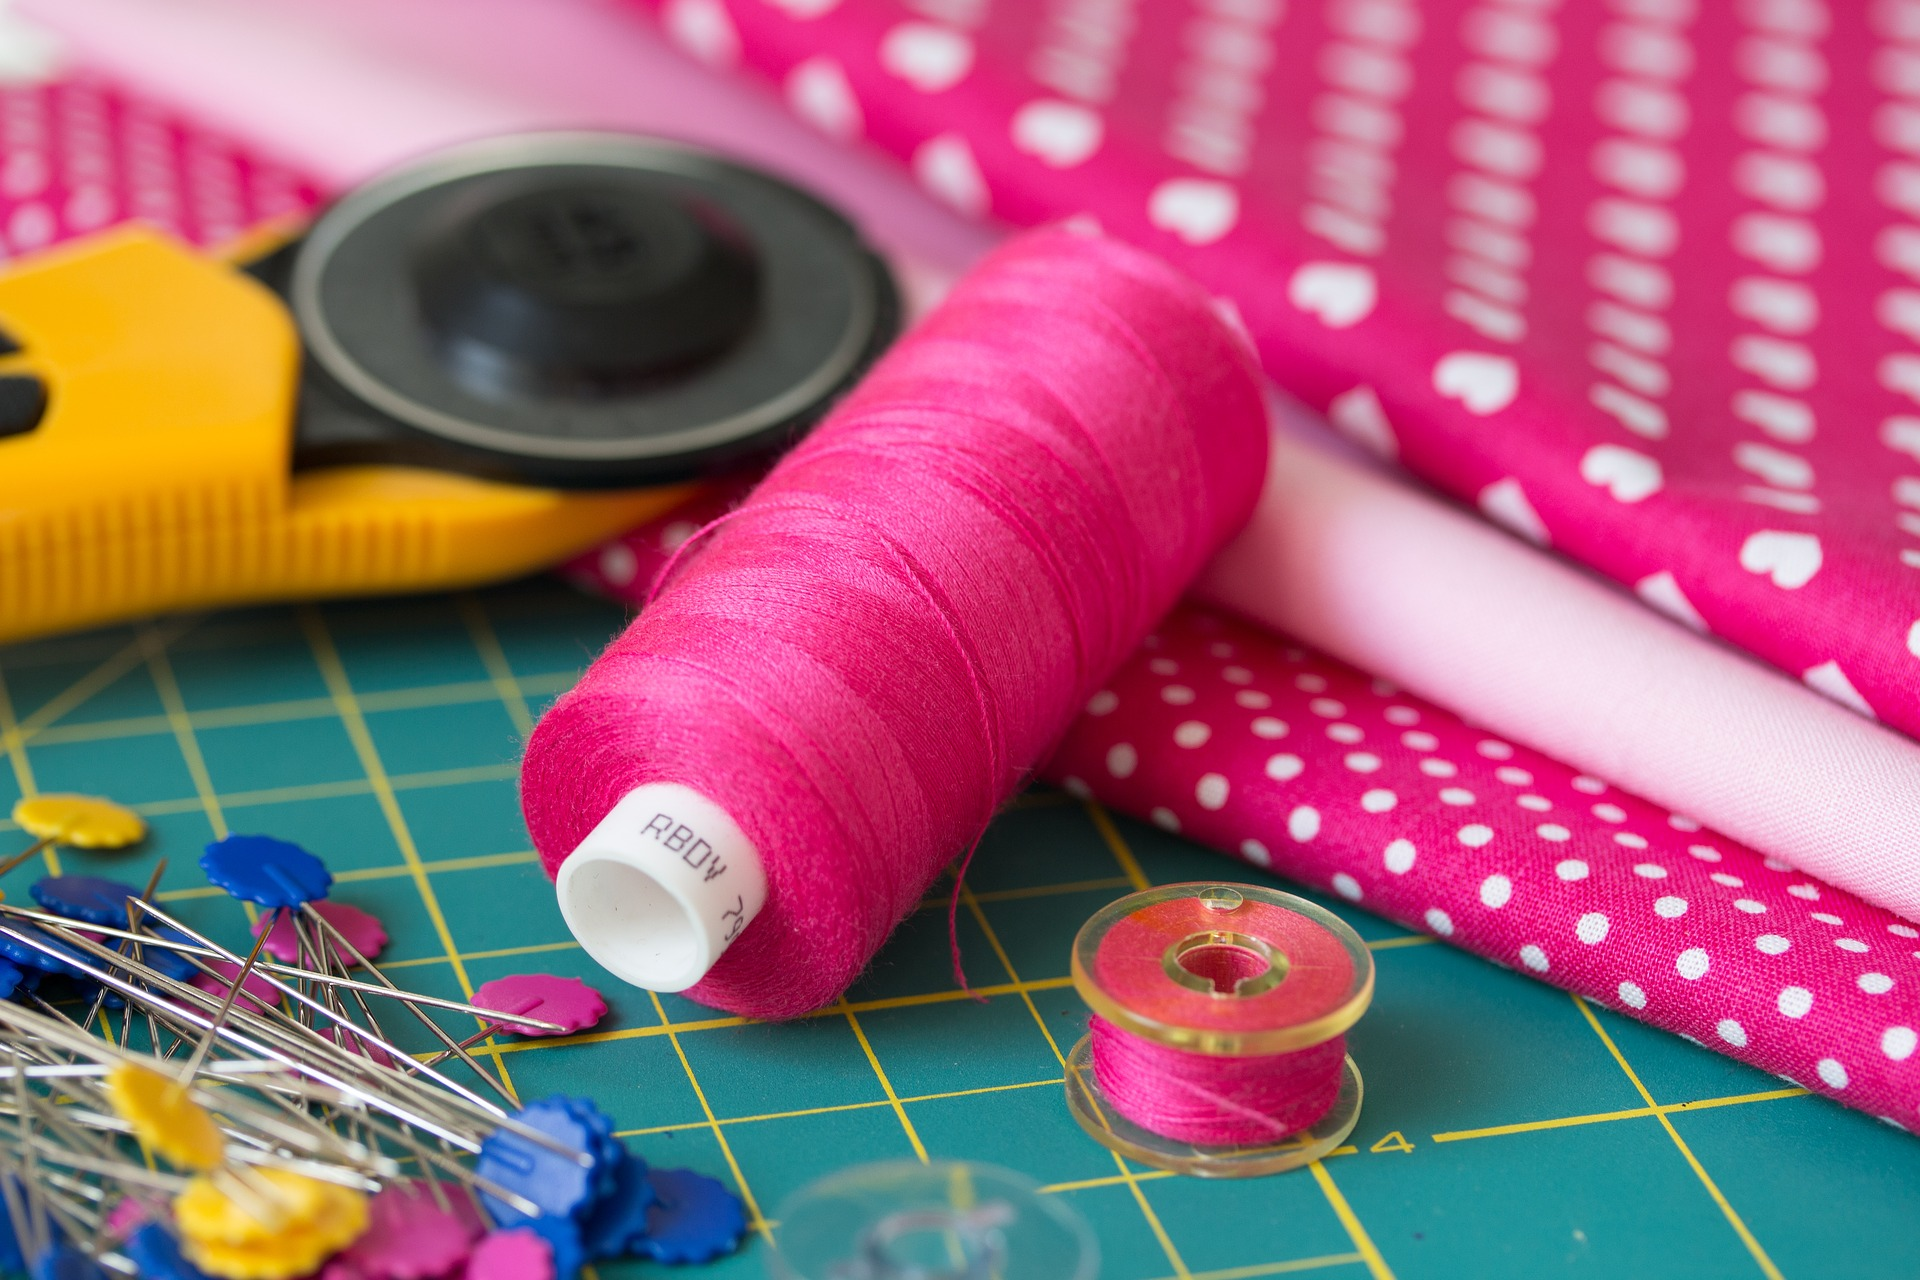 sewing-2321532_1920